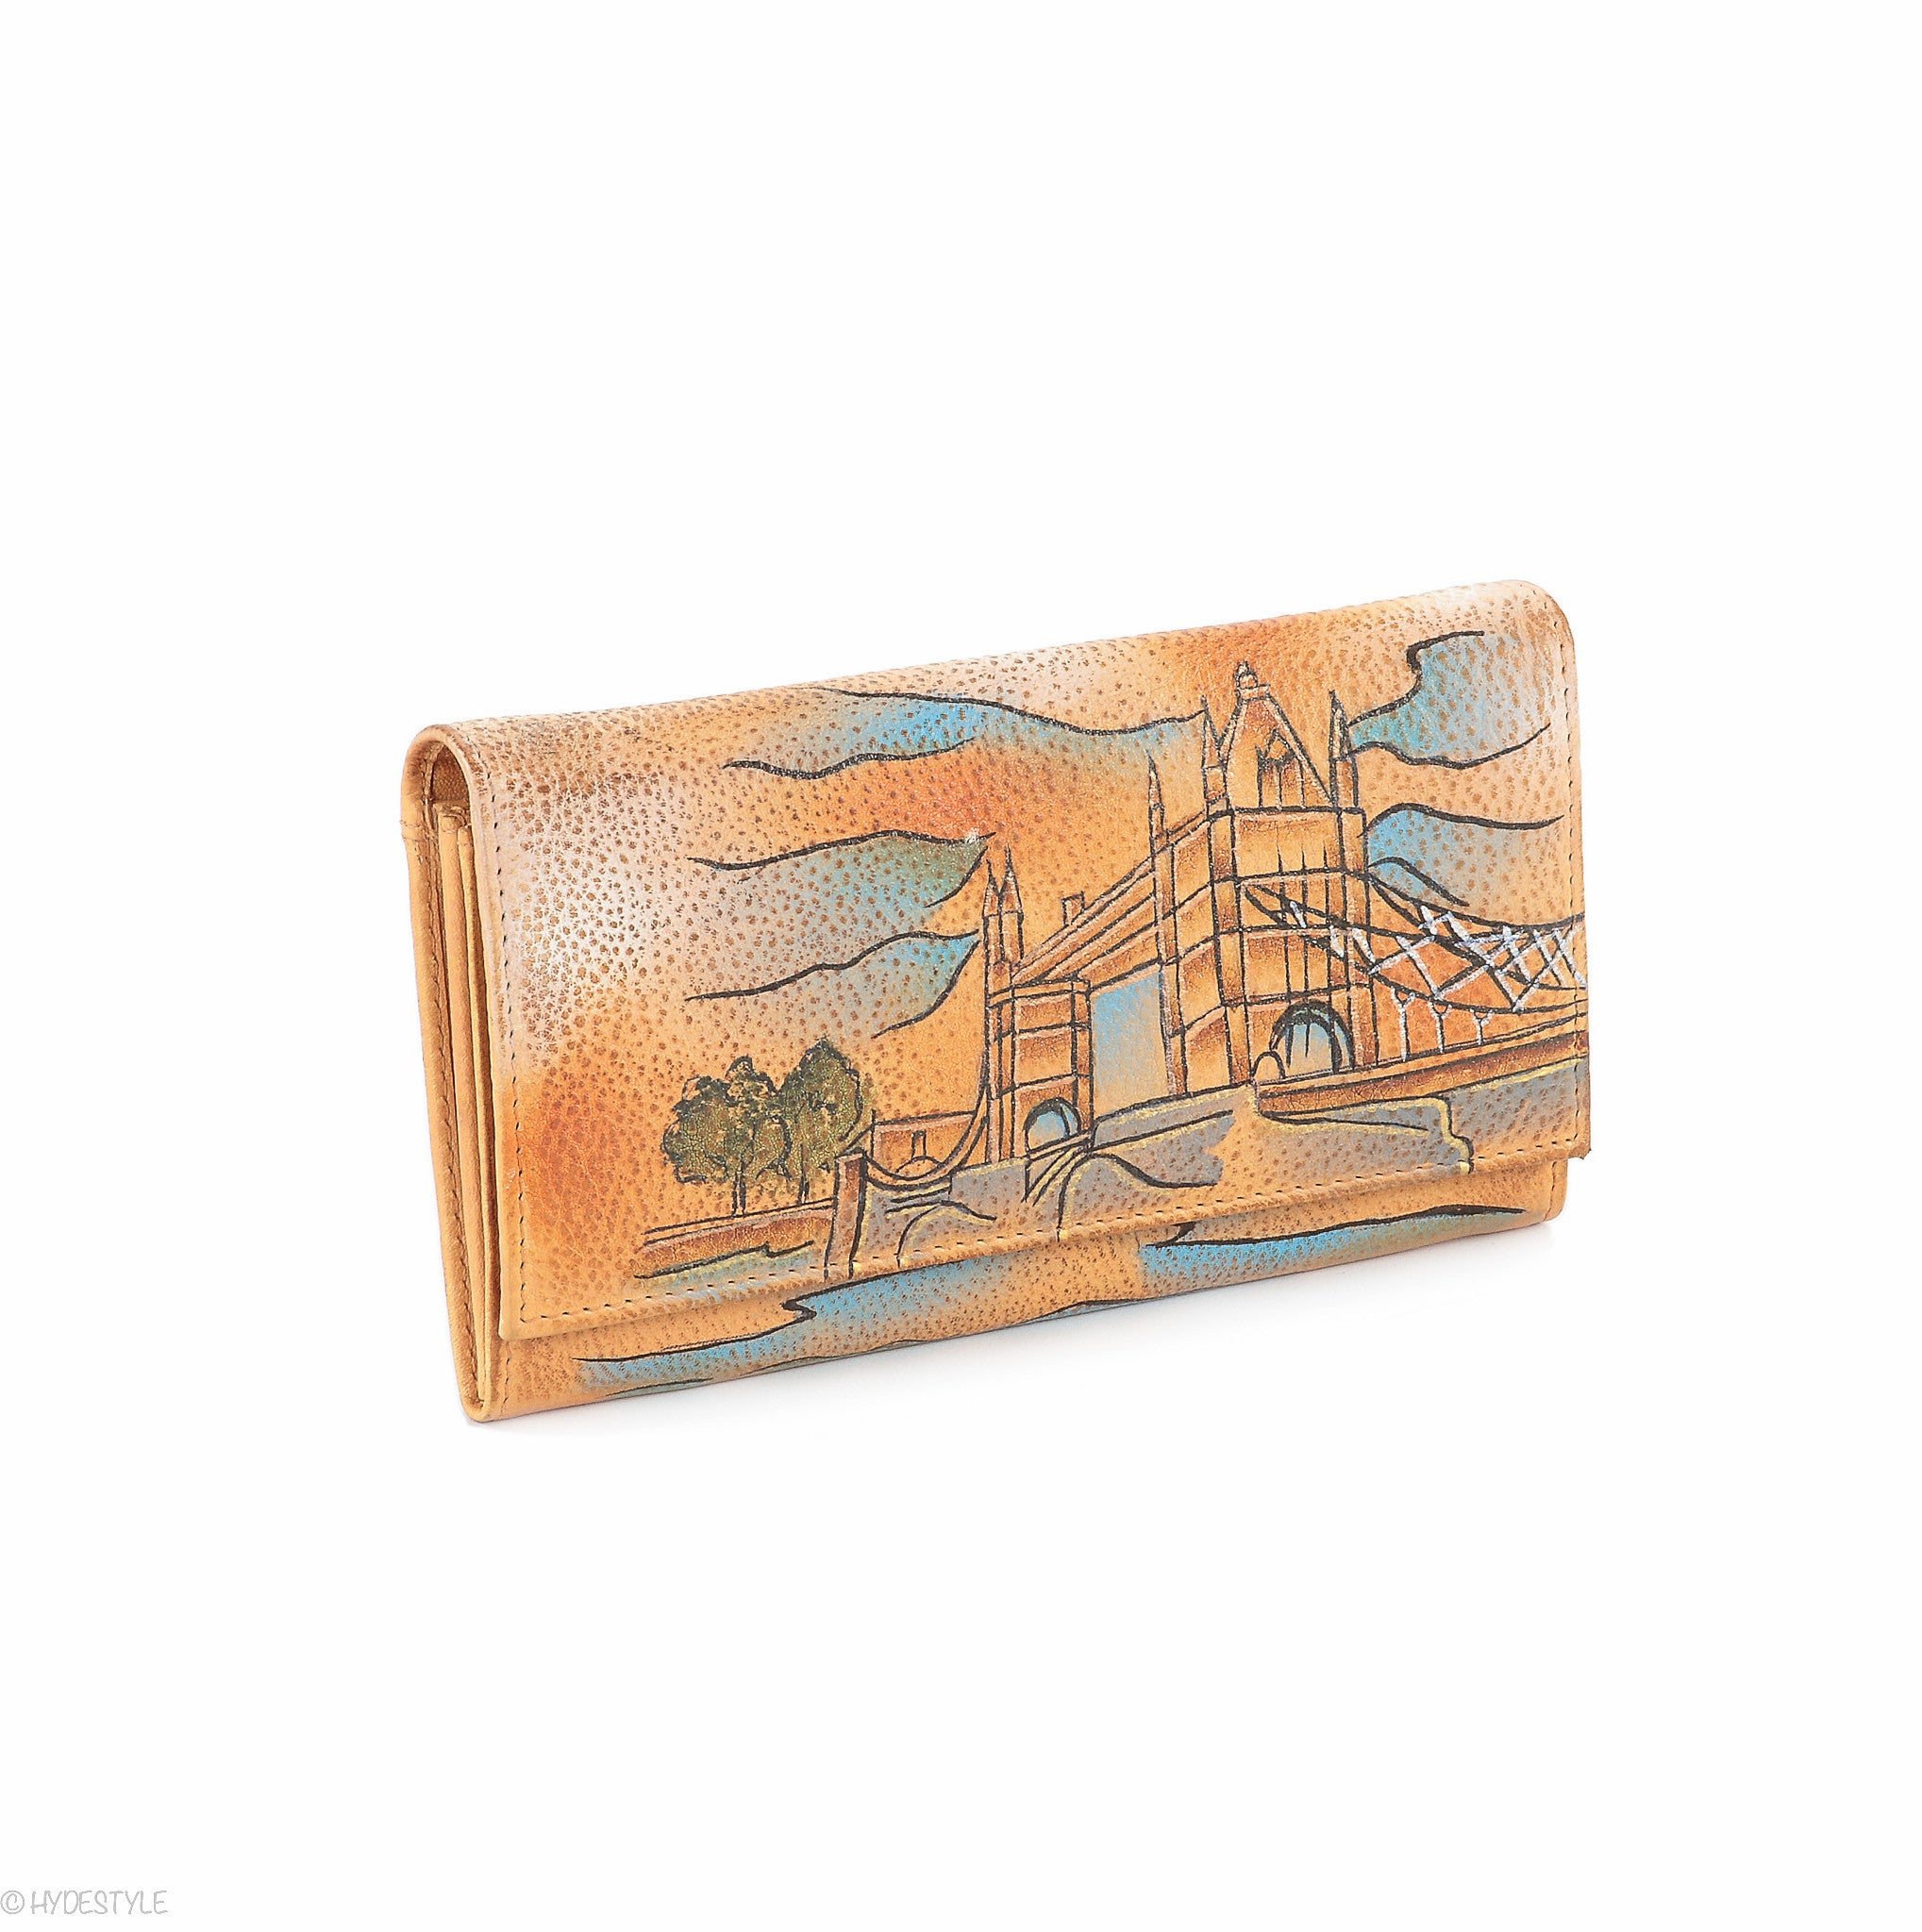 Picta Manu Hand Painted Leather Ladies Purse...